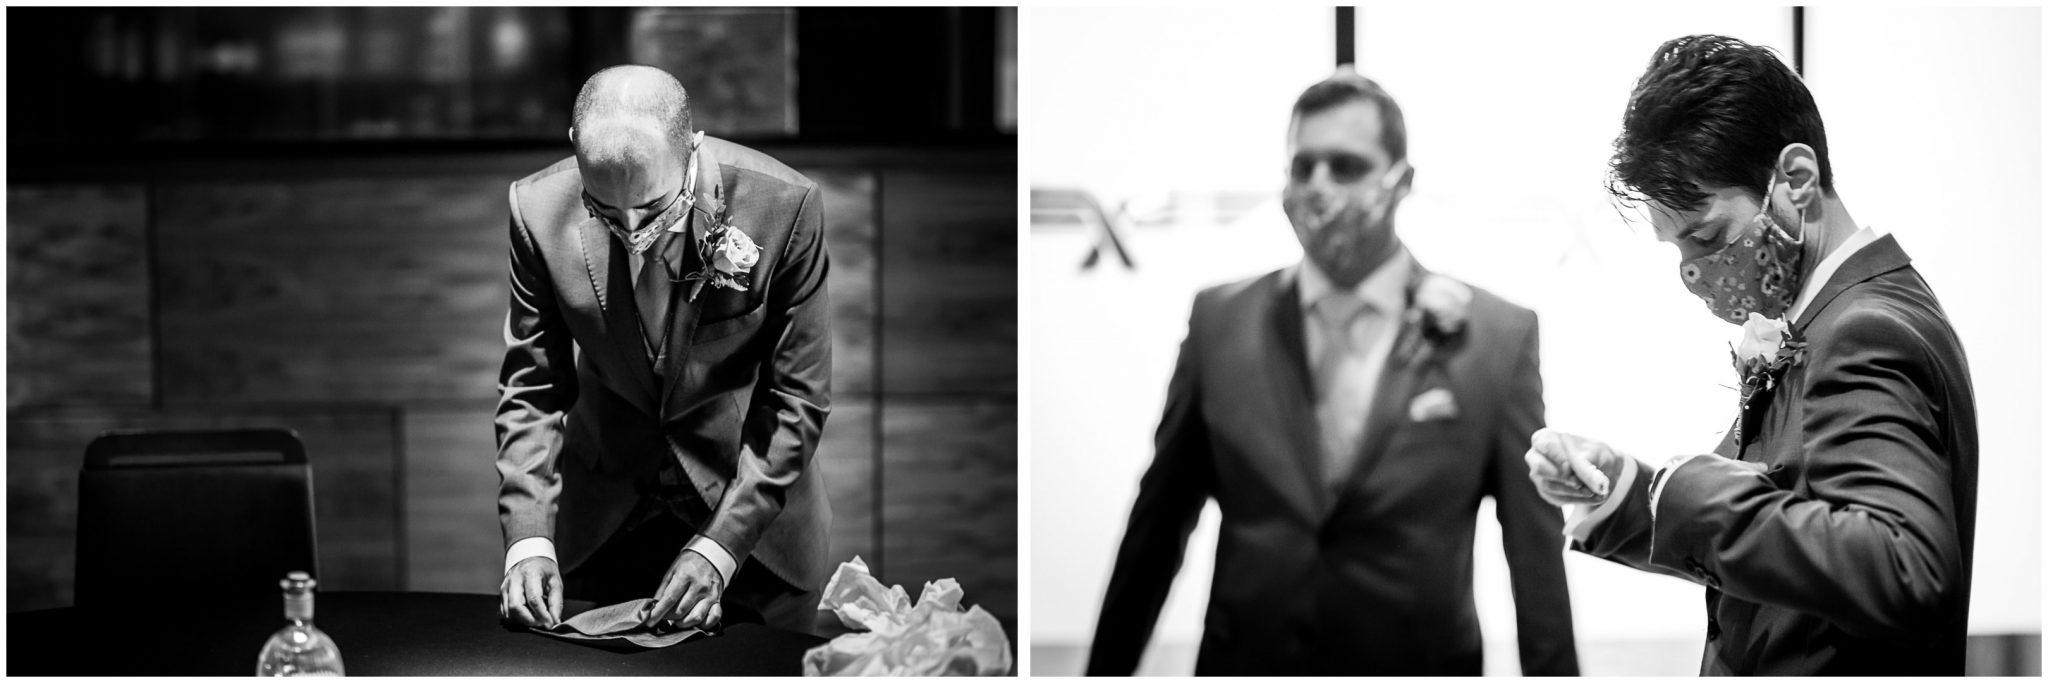 Black and white photographs of groomsmen getting ready